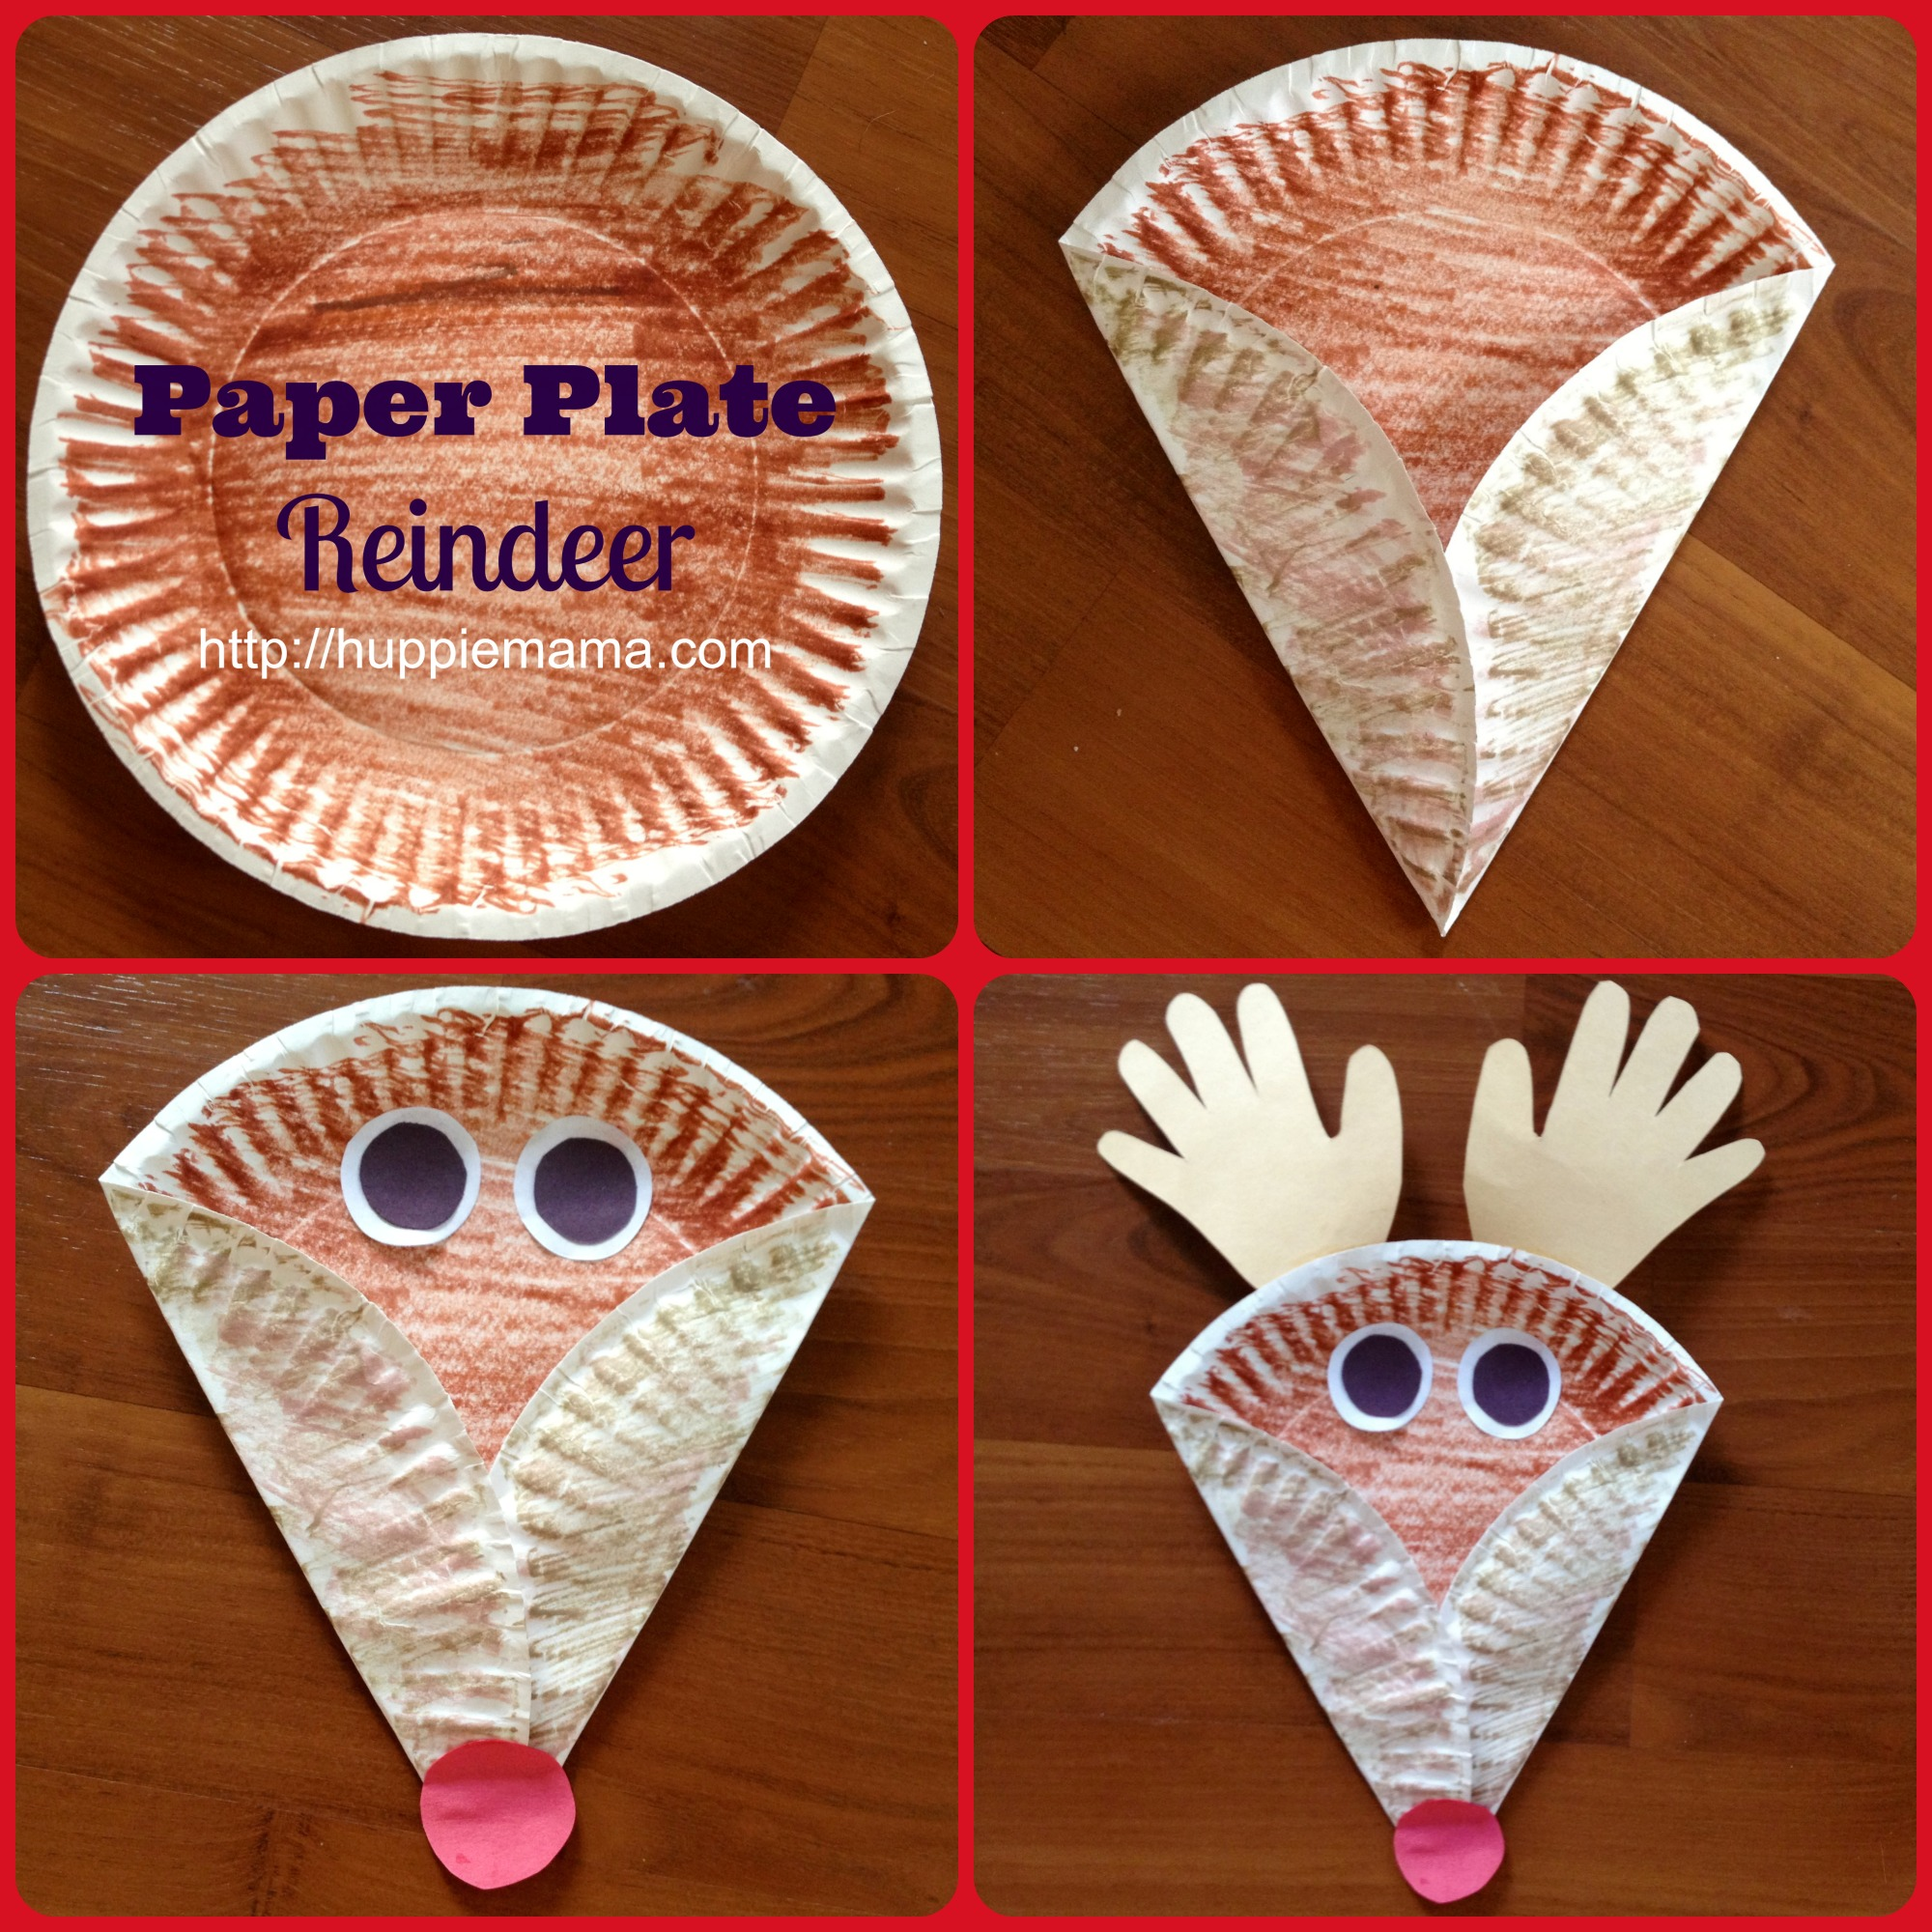 & Christmas Kids Craft: Paper Plate Reindeer - Our Potluck Family